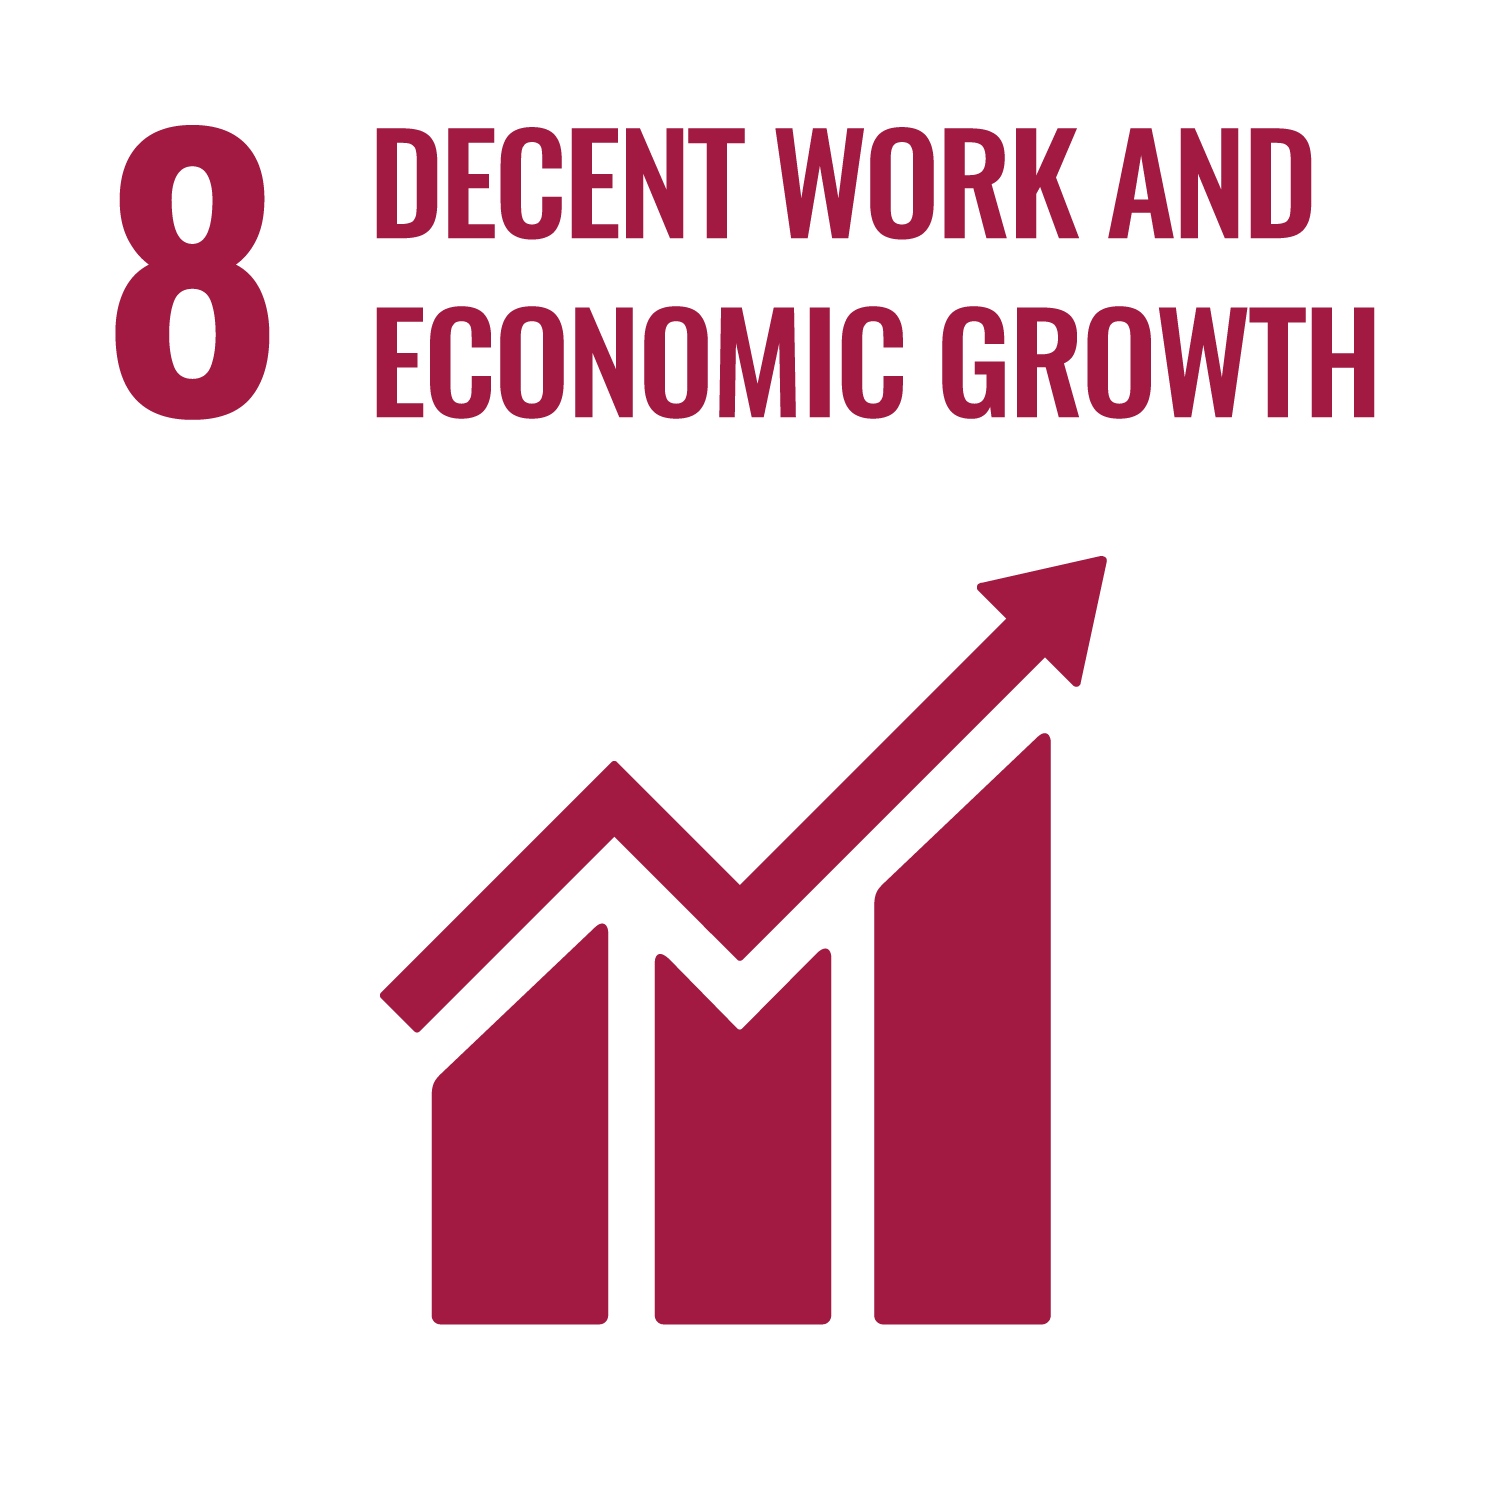 8_Decent_Work_And_Economic_Growth